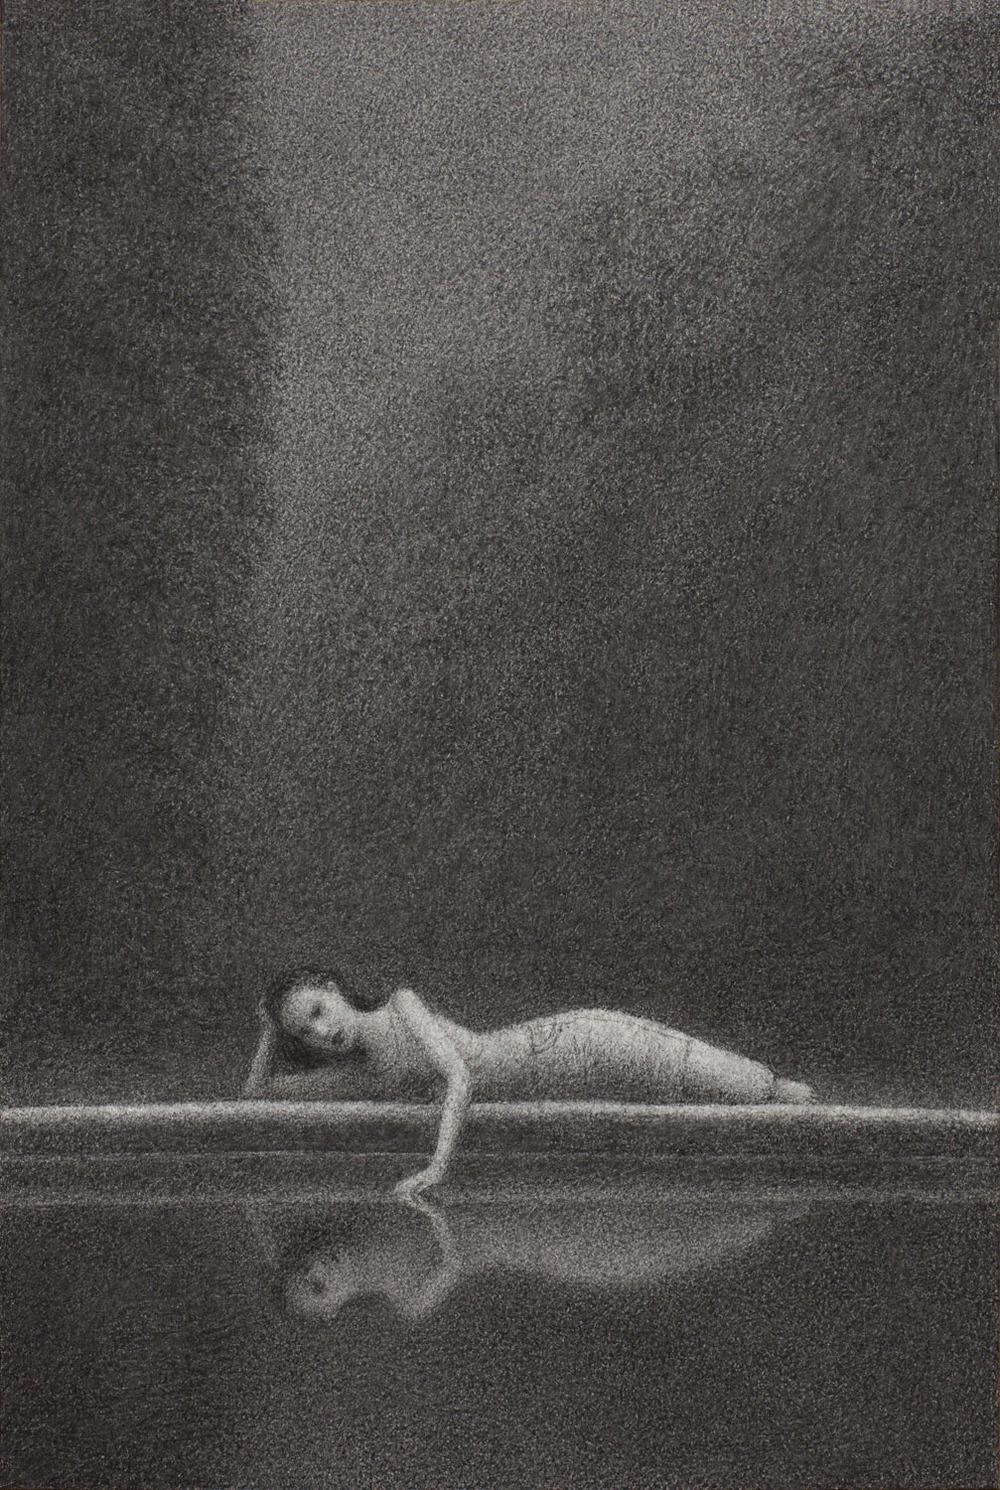 Vigil 6 , charcoal on paper, 15 x 10 in / 38 x 25 cm, 2013